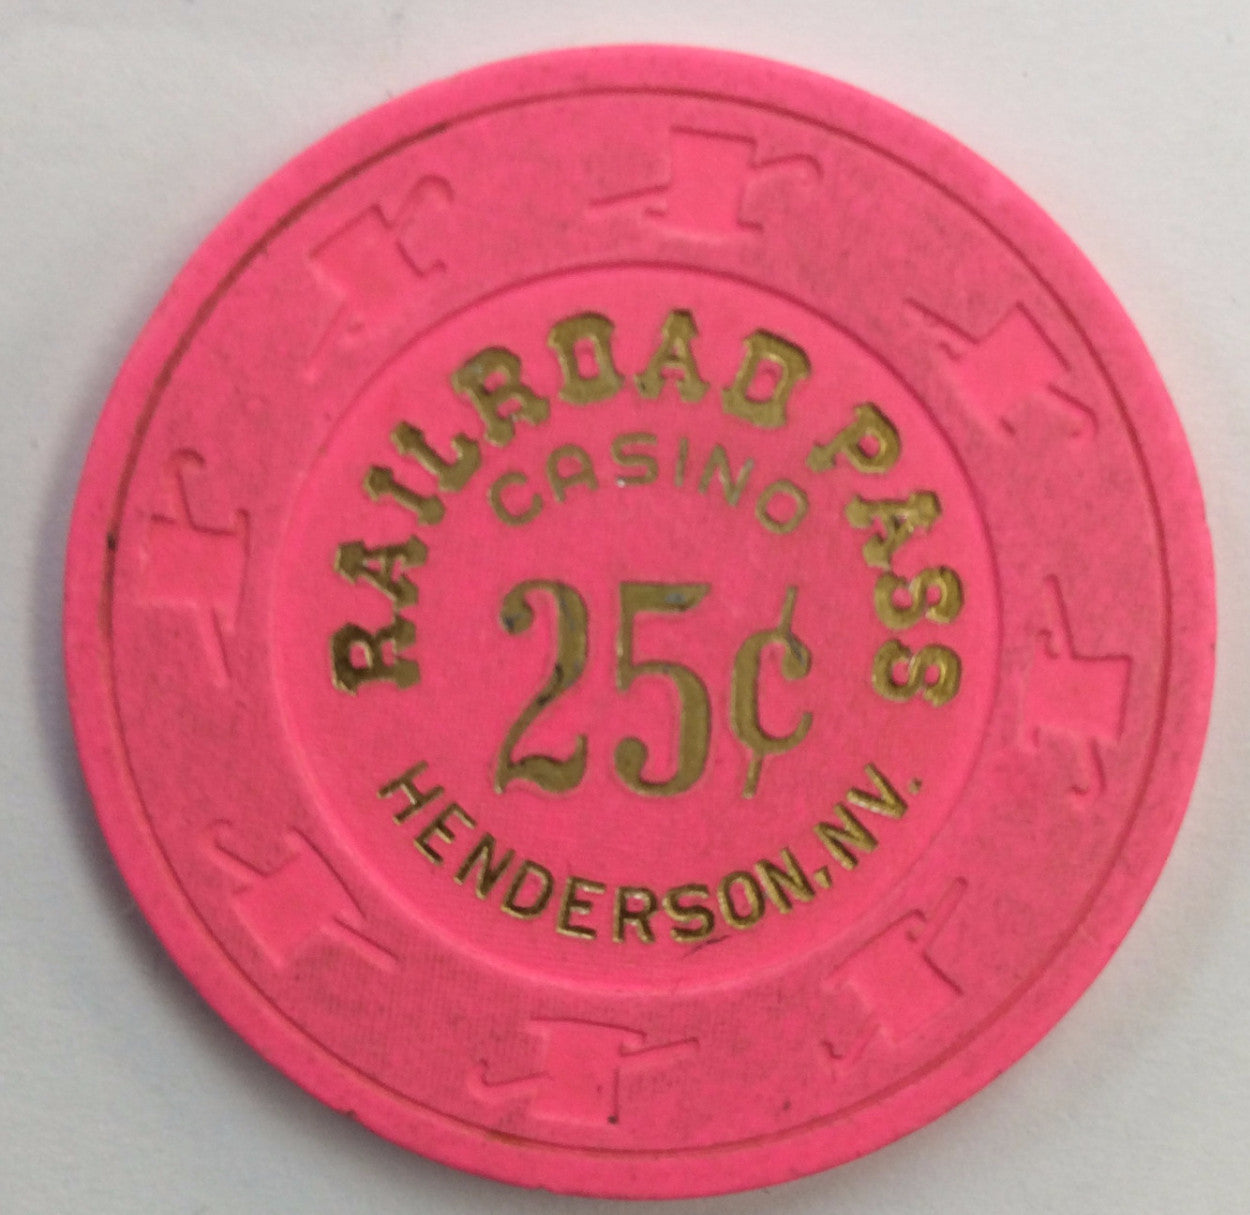 Railroad Pass Casino 25cent (pink) chip - Spinettis Gaming